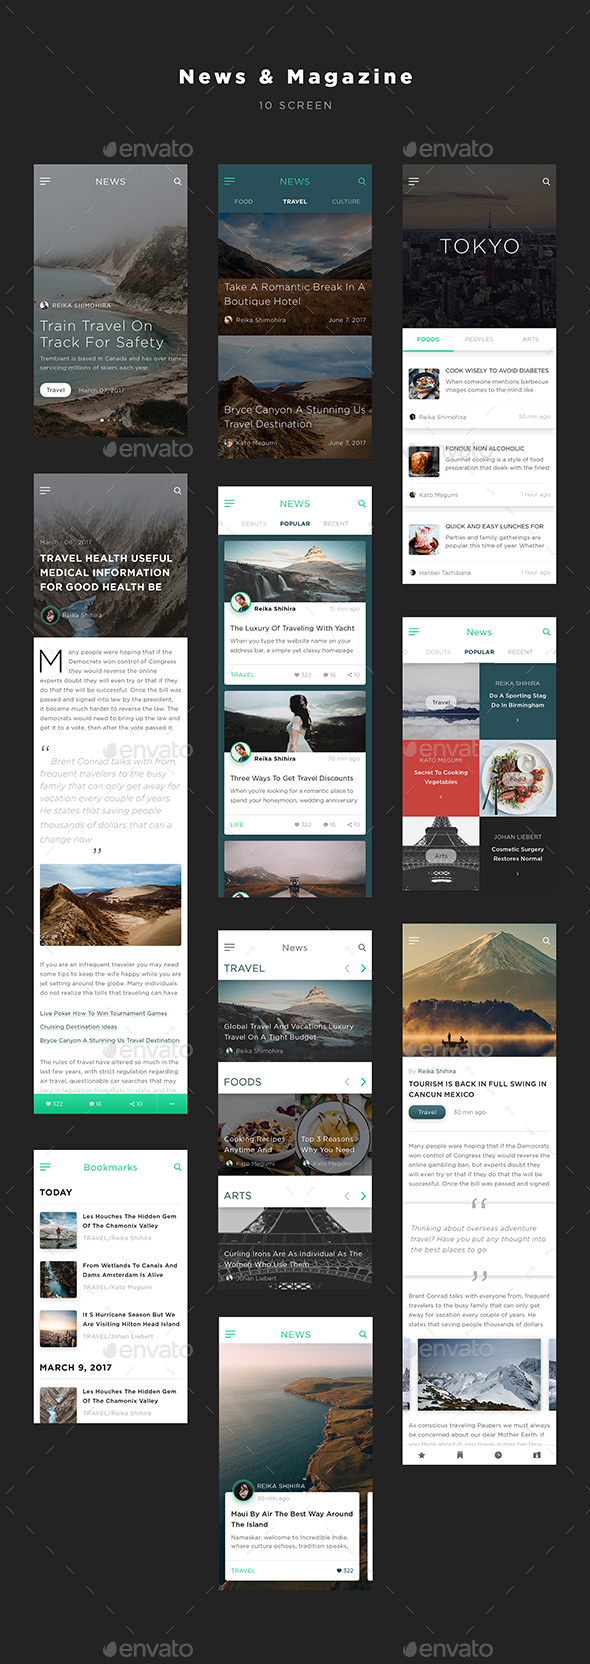 Mugen App UI KIT – News & Magazine (User Interfaces)